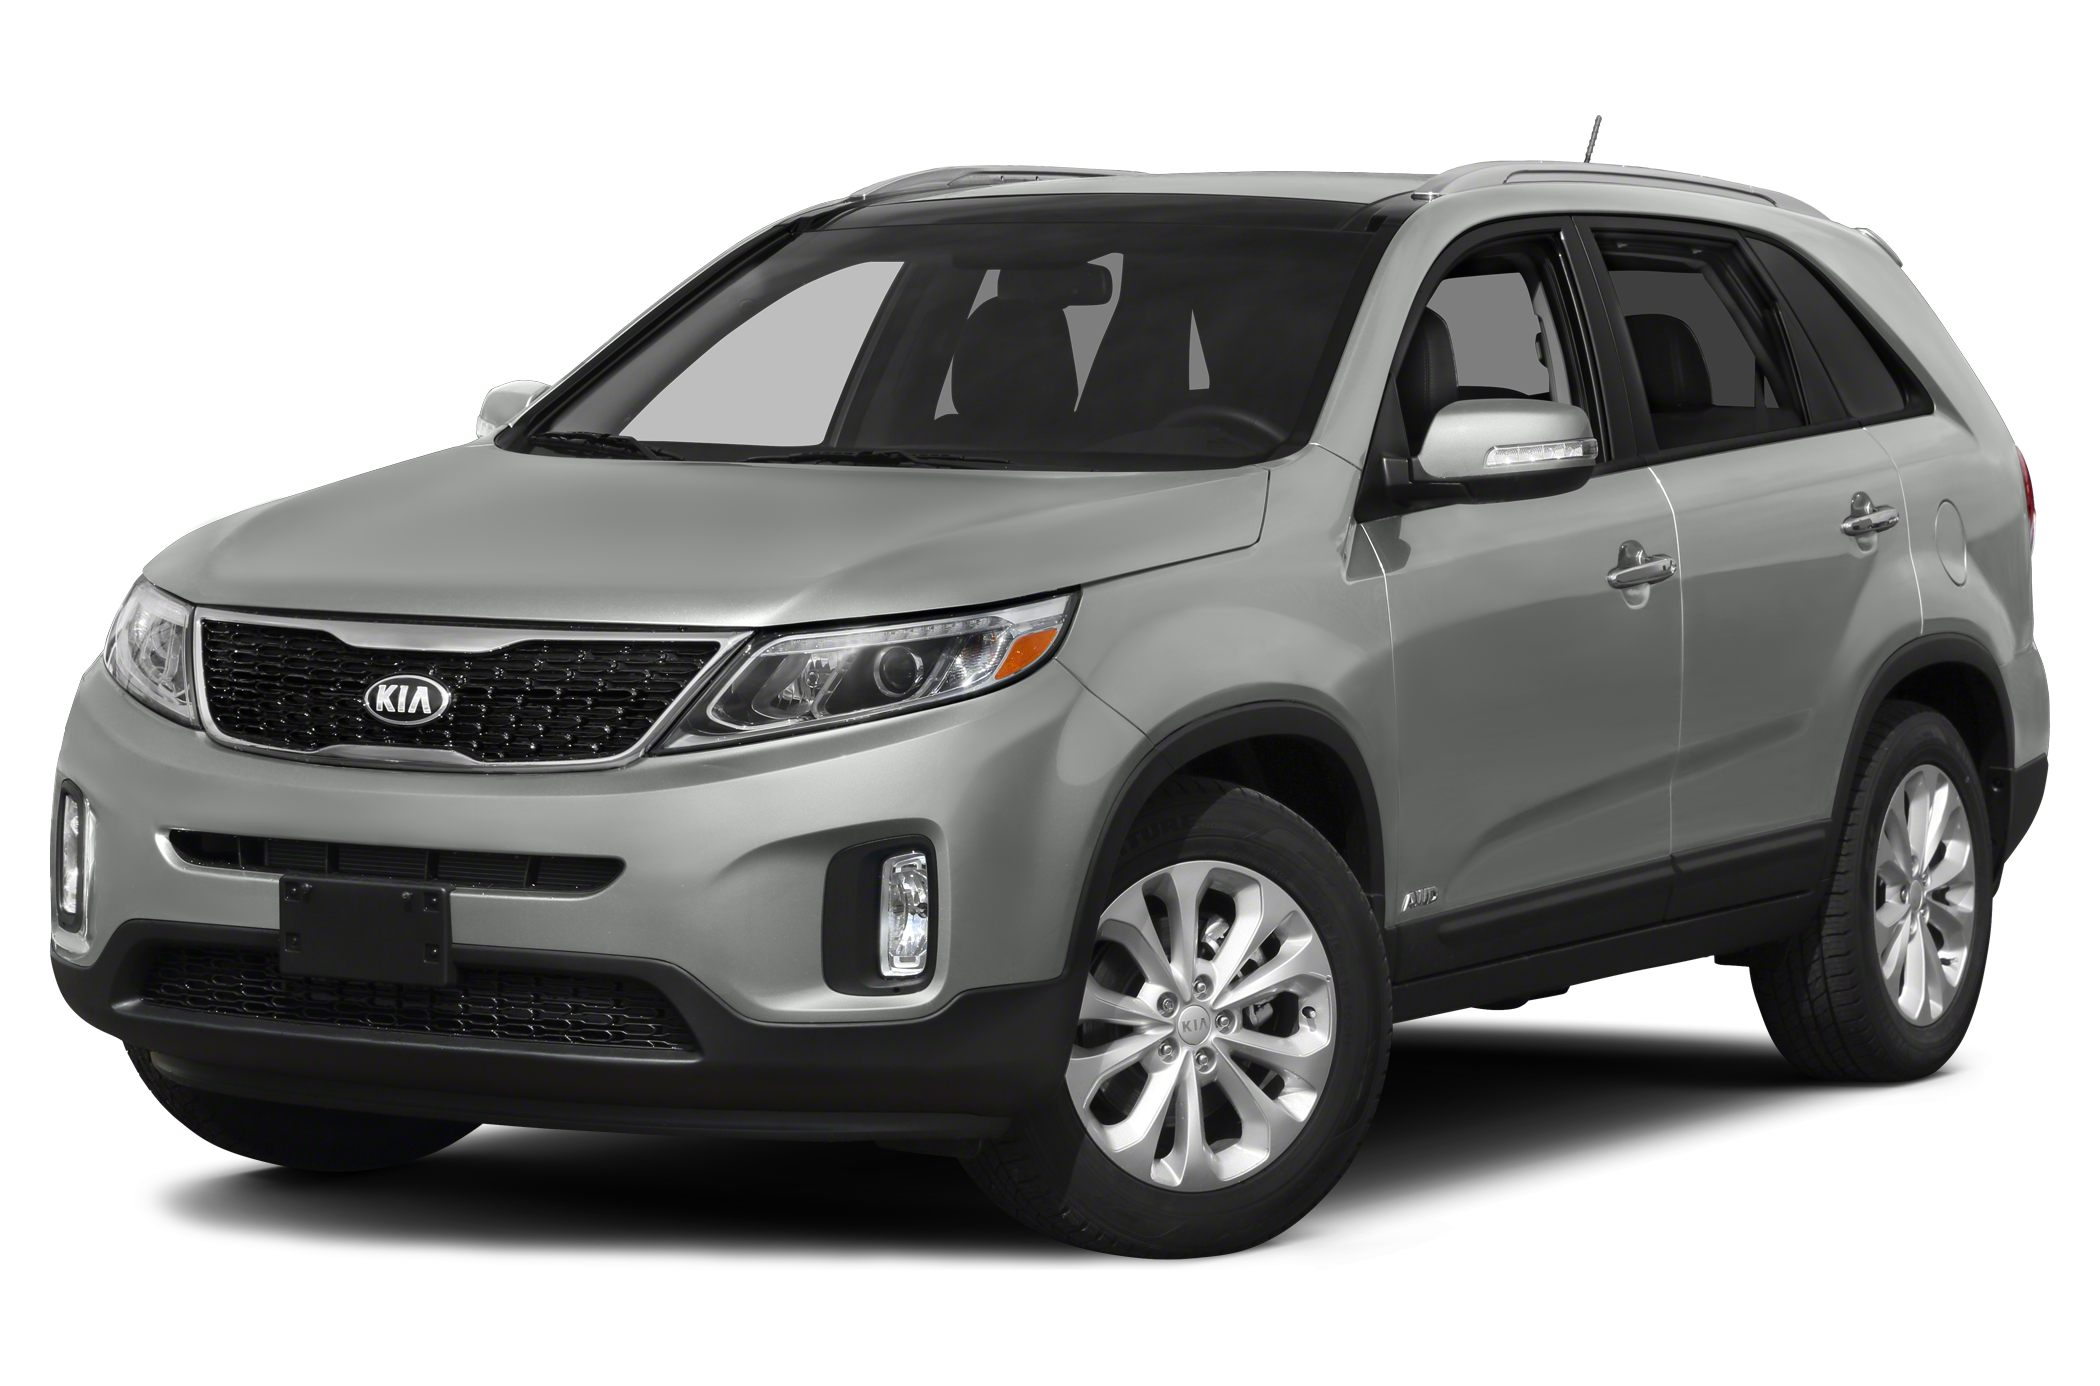 2015 Kia Sorento SX Recent Arrival New Price Priced below KBB Fair Purchase Price KIA CERTIFI